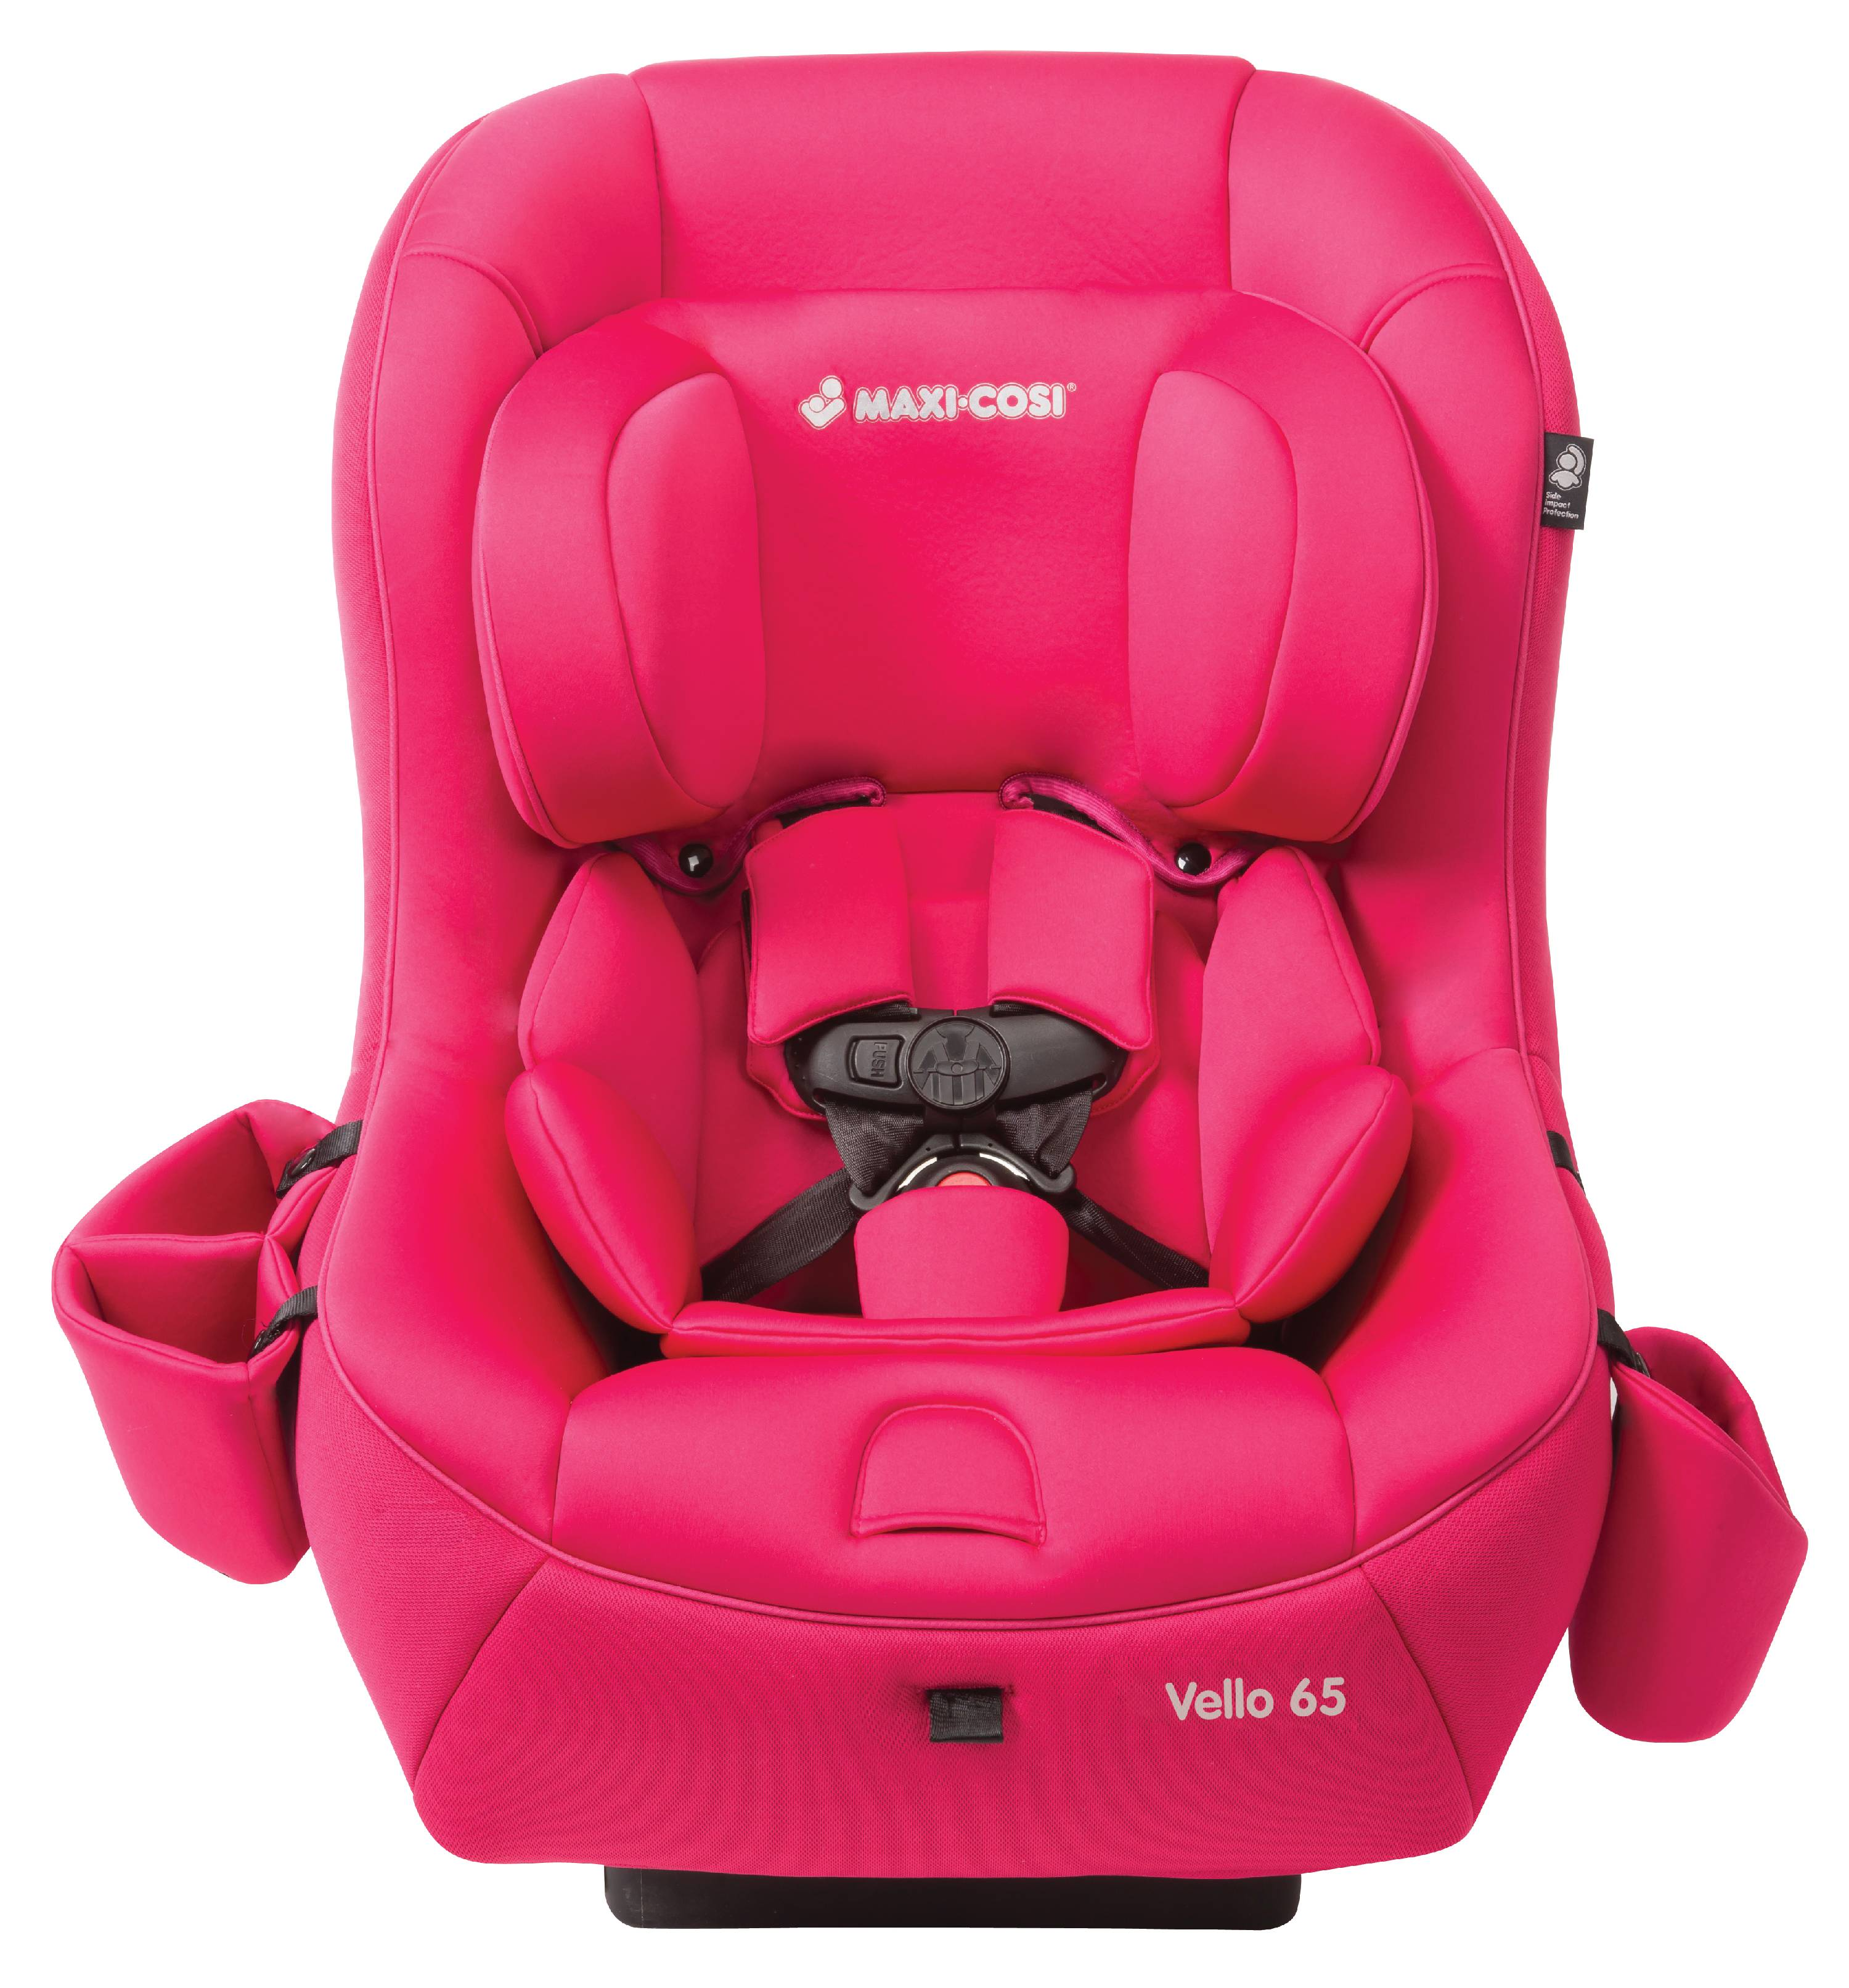 Maxi-Cosi Vello 65 Convertible Car Seat, Pink Vello